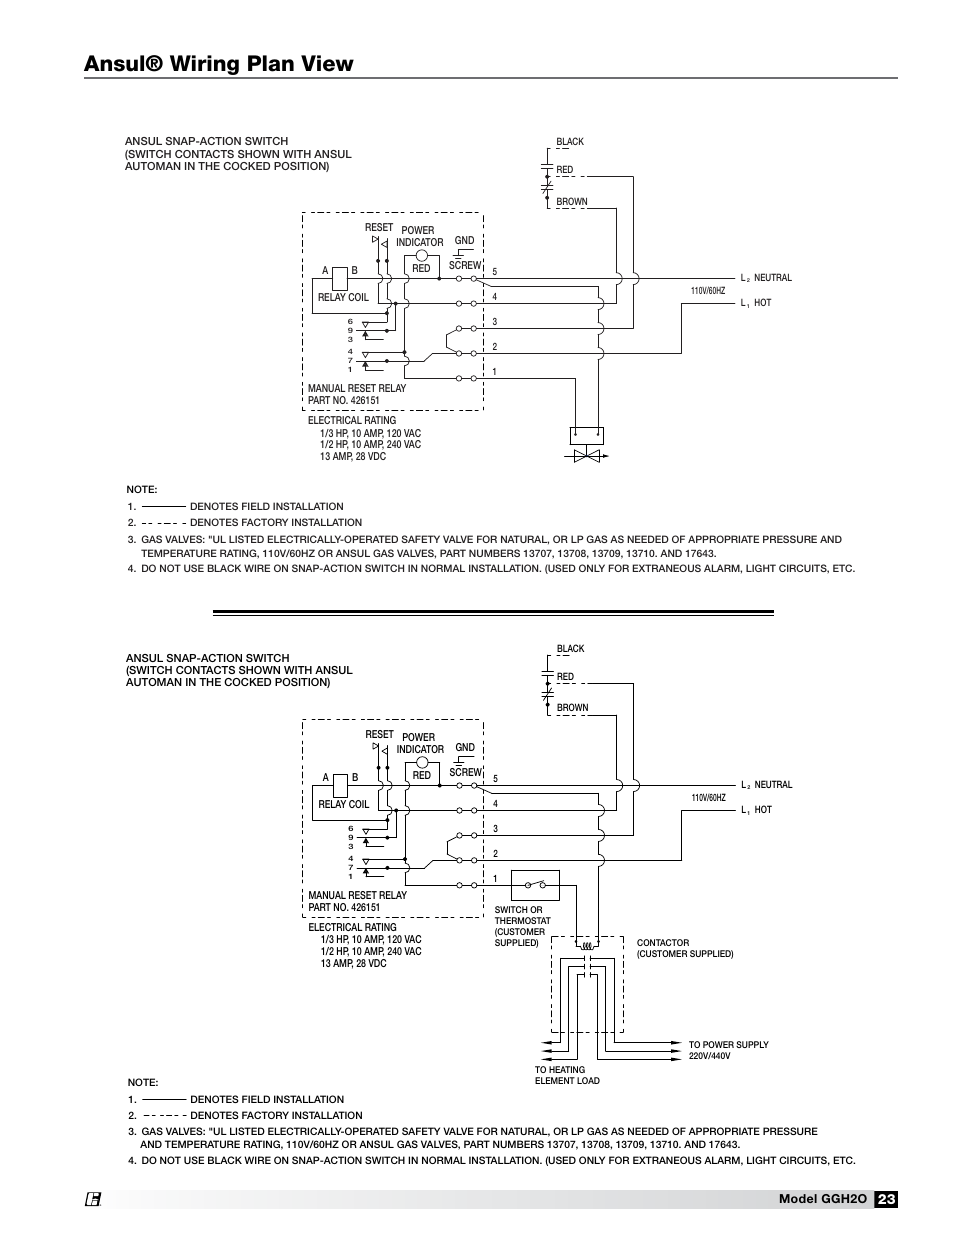 Ansul® wiring plan view | Greenheck Fan Grease Grabber H2O Auto-Cleaning  Hood GGH20 User Manual | Page 23 / 28